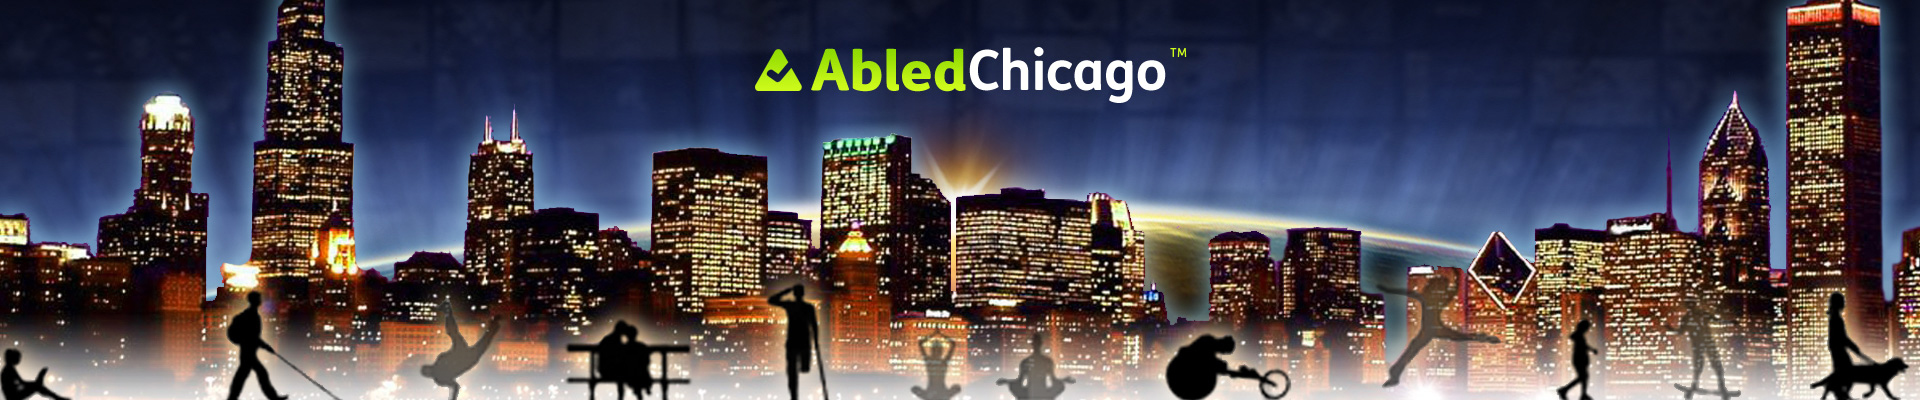 AbledChicago Banner shows a night-time cityscape as seen from the lake with the silhouettes of differently abled people walking, sitting, racing in a sport wheelchair, walking with a guide dog, doing yoga etc. The AbledChicago logo is at the top.